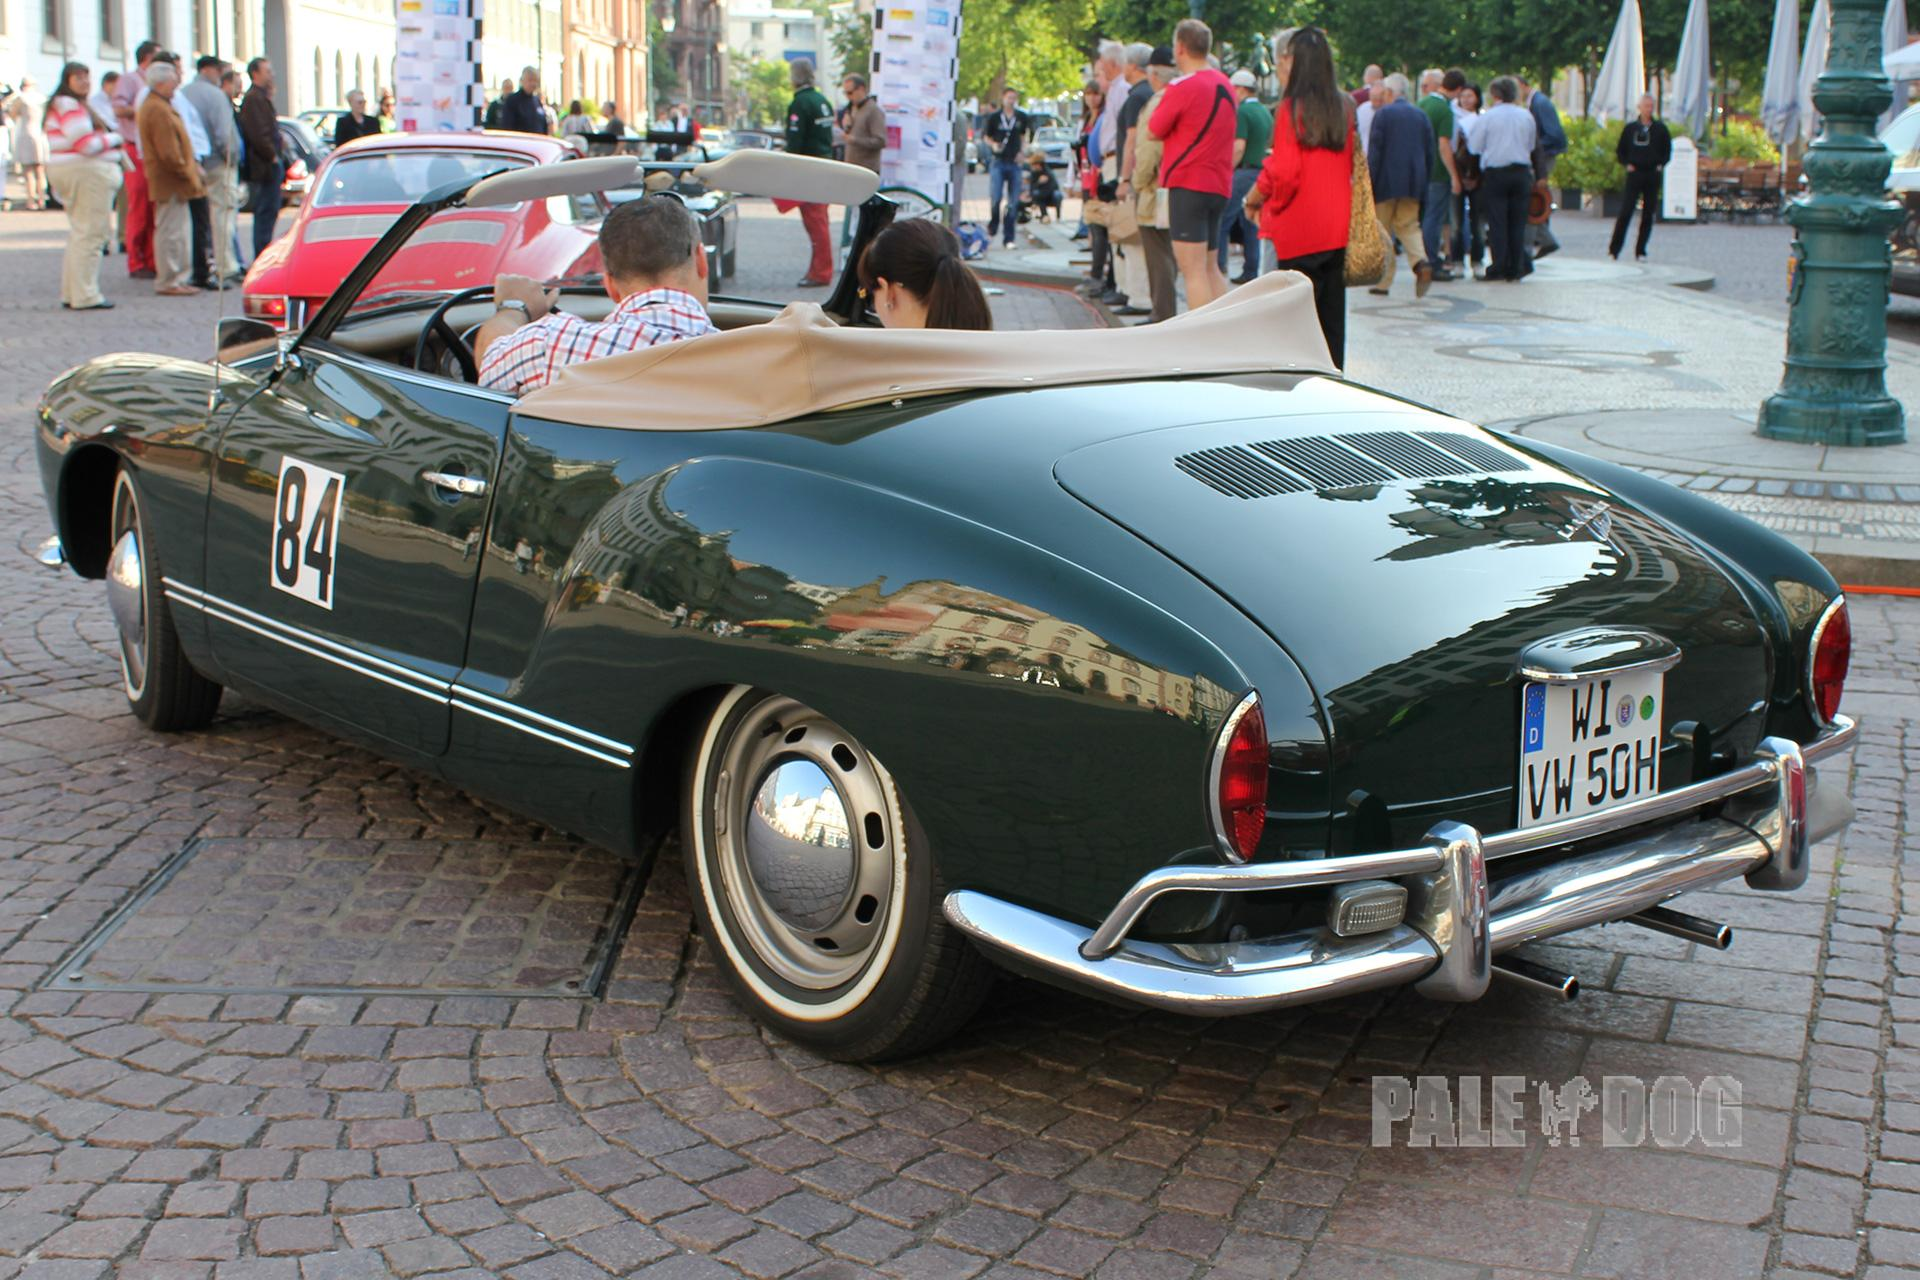 1965 vw 1300 karmann ghia typ 14 cabriolet rear view 1960s paledog photo collection. Black Bedroom Furniture Sets. Home Design Ideas